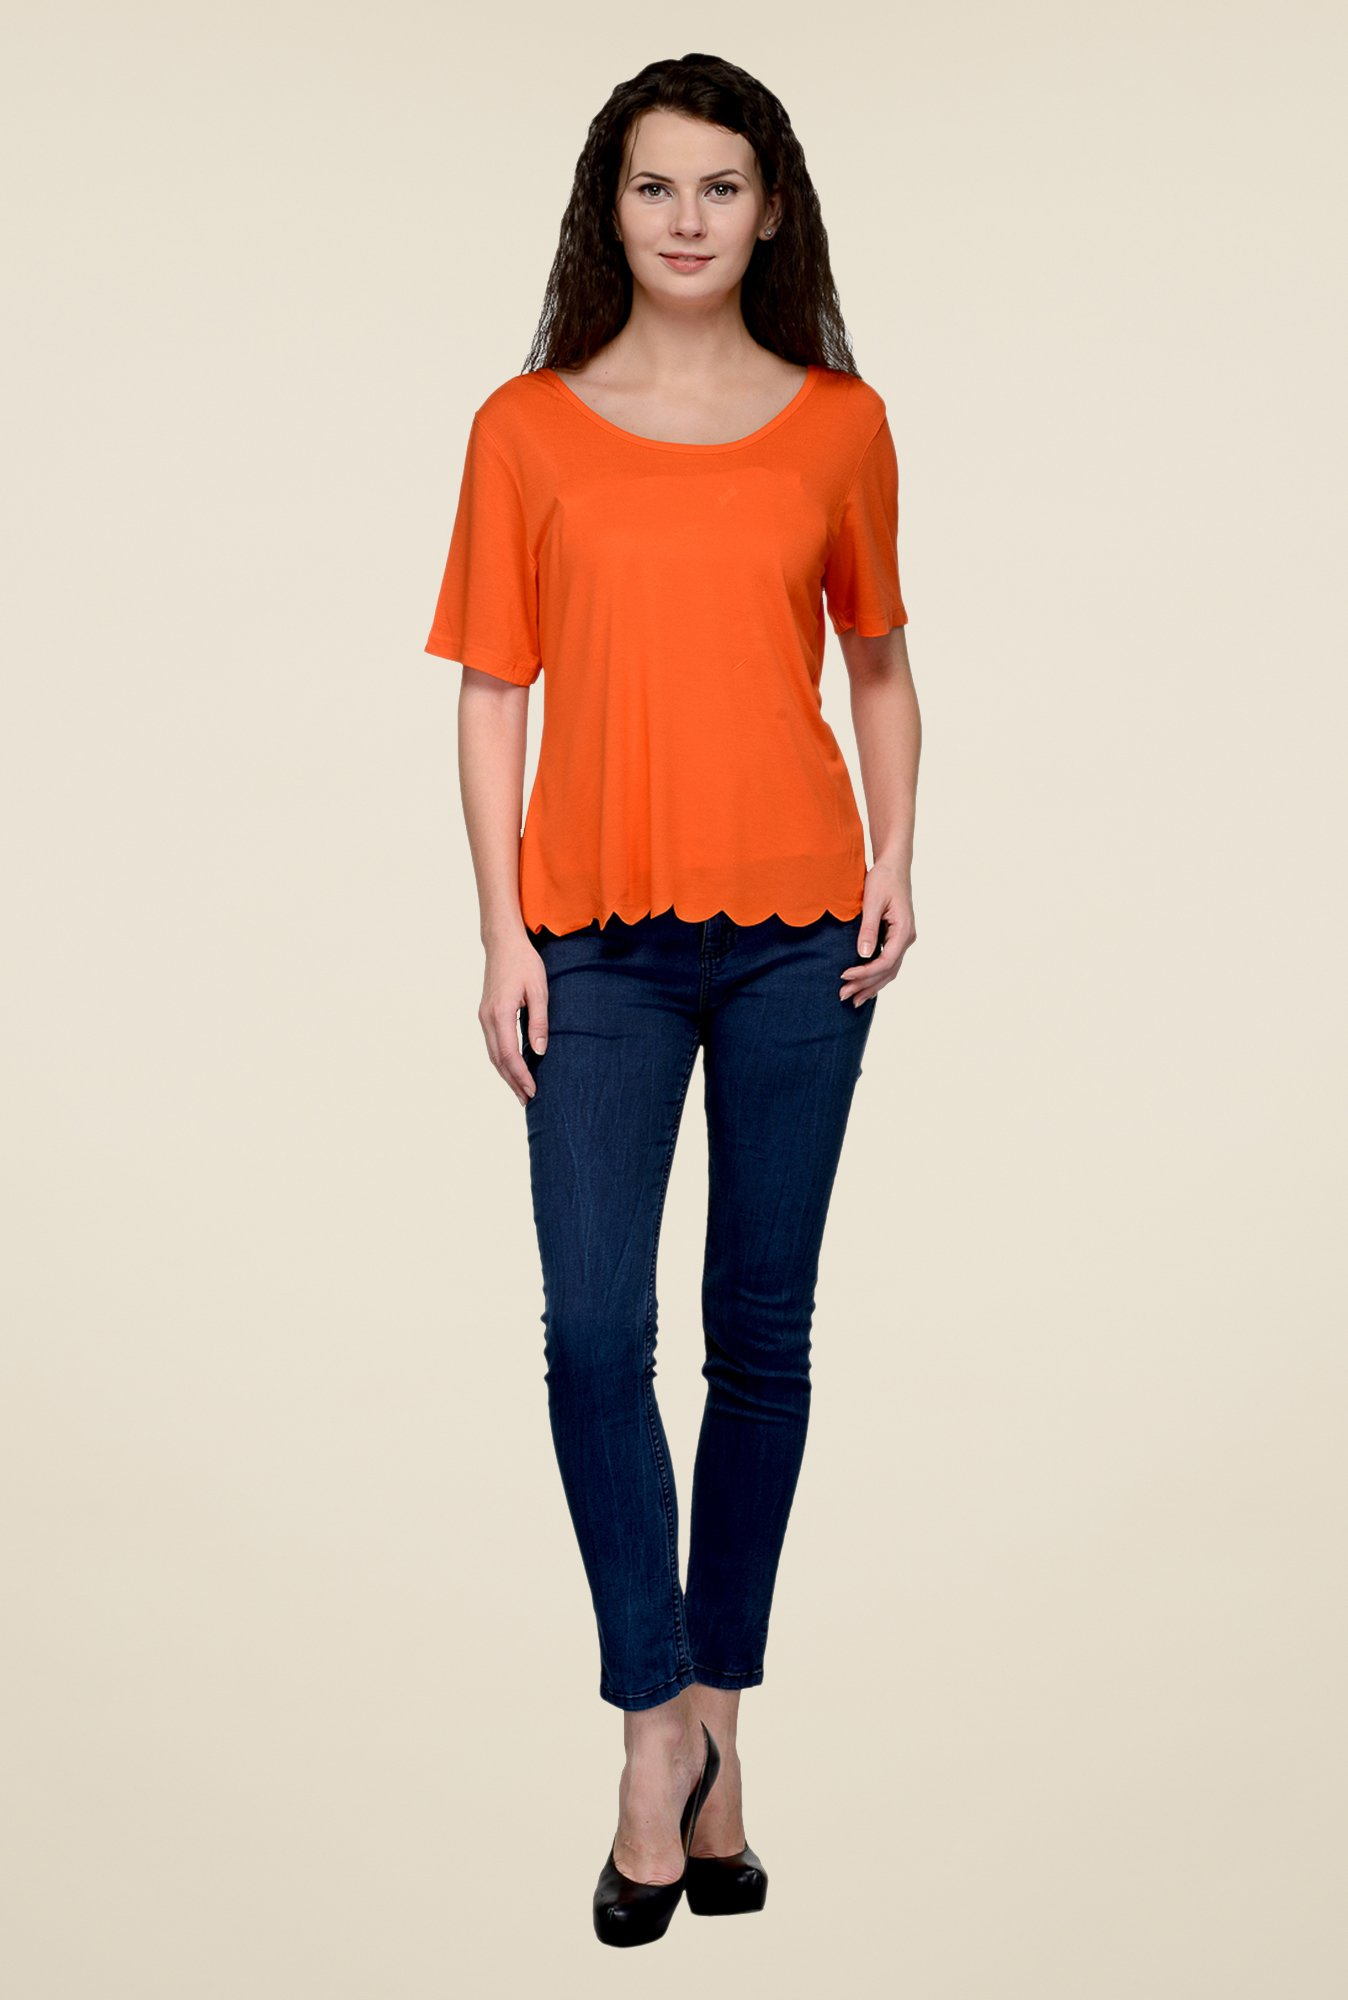 United Colors of Benetton Orange Solid Top